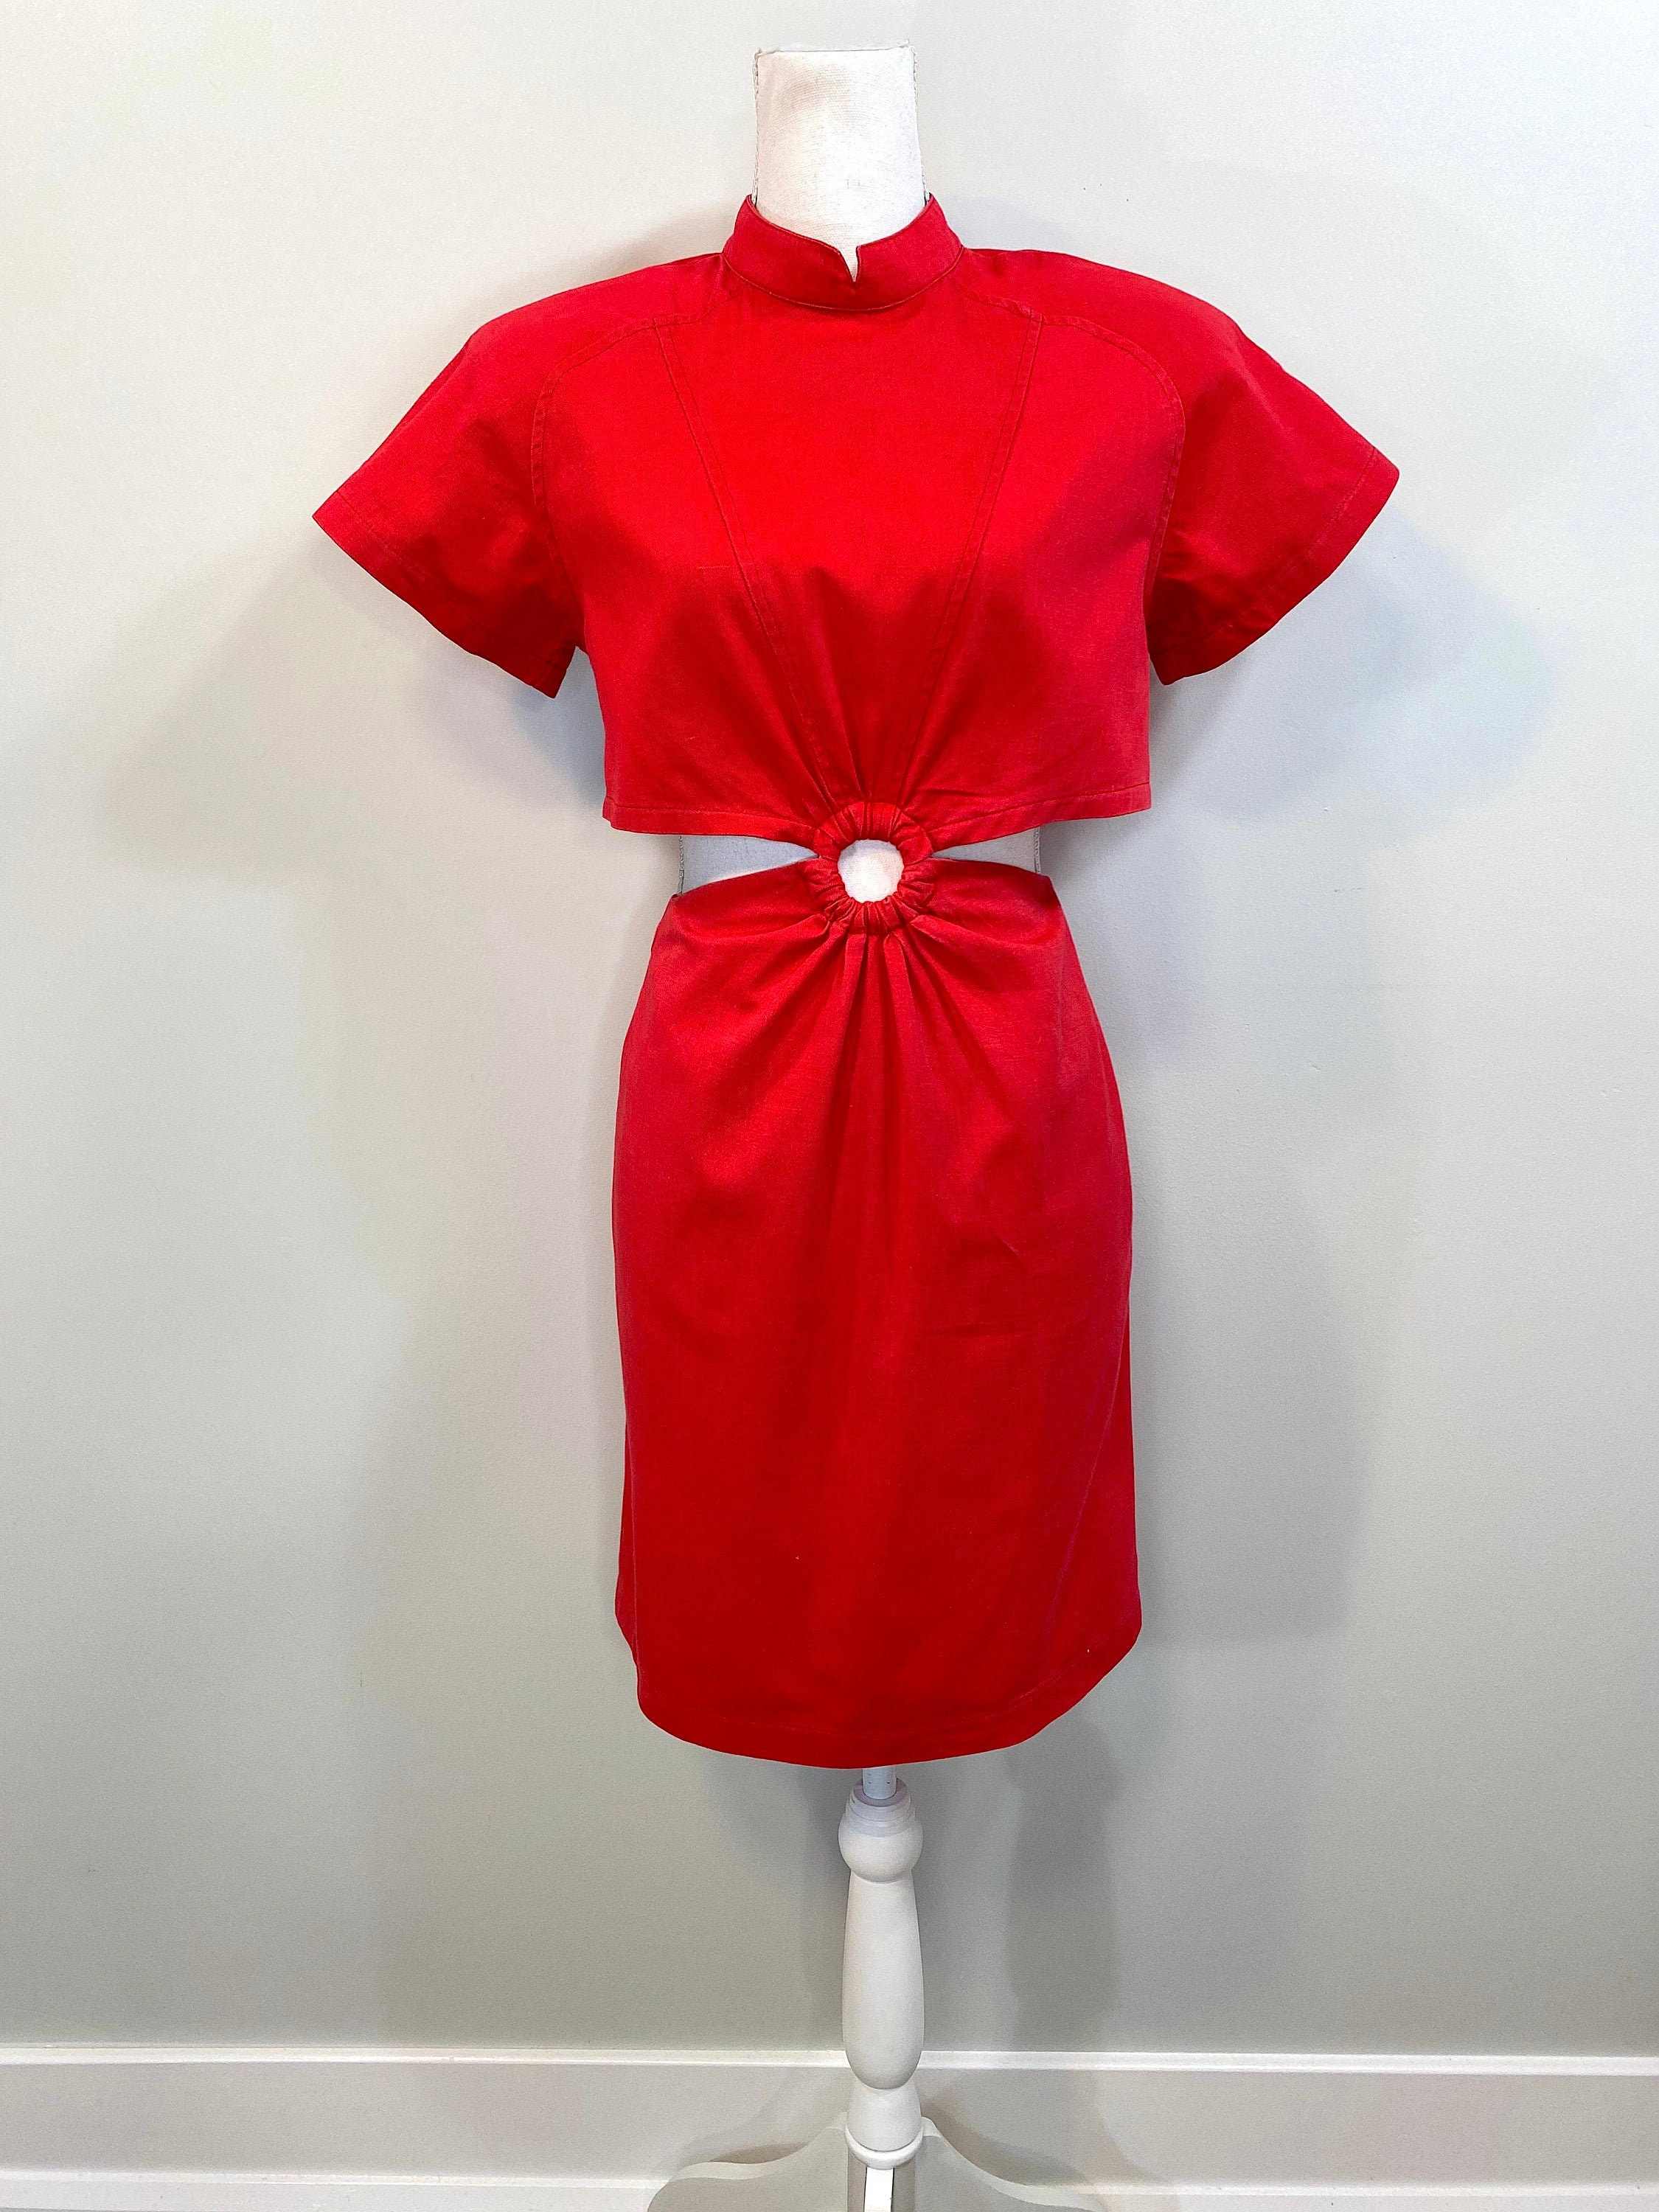 80s Dresses | Casual to Party Dresses Vintage 1980S Red Dress - Crop Top With Pencil Skirt Connected A Ring. Padded Shoulder, Short Raglan Sleeve. Buttons Up The Back $0.00 AT vintagedancer.com